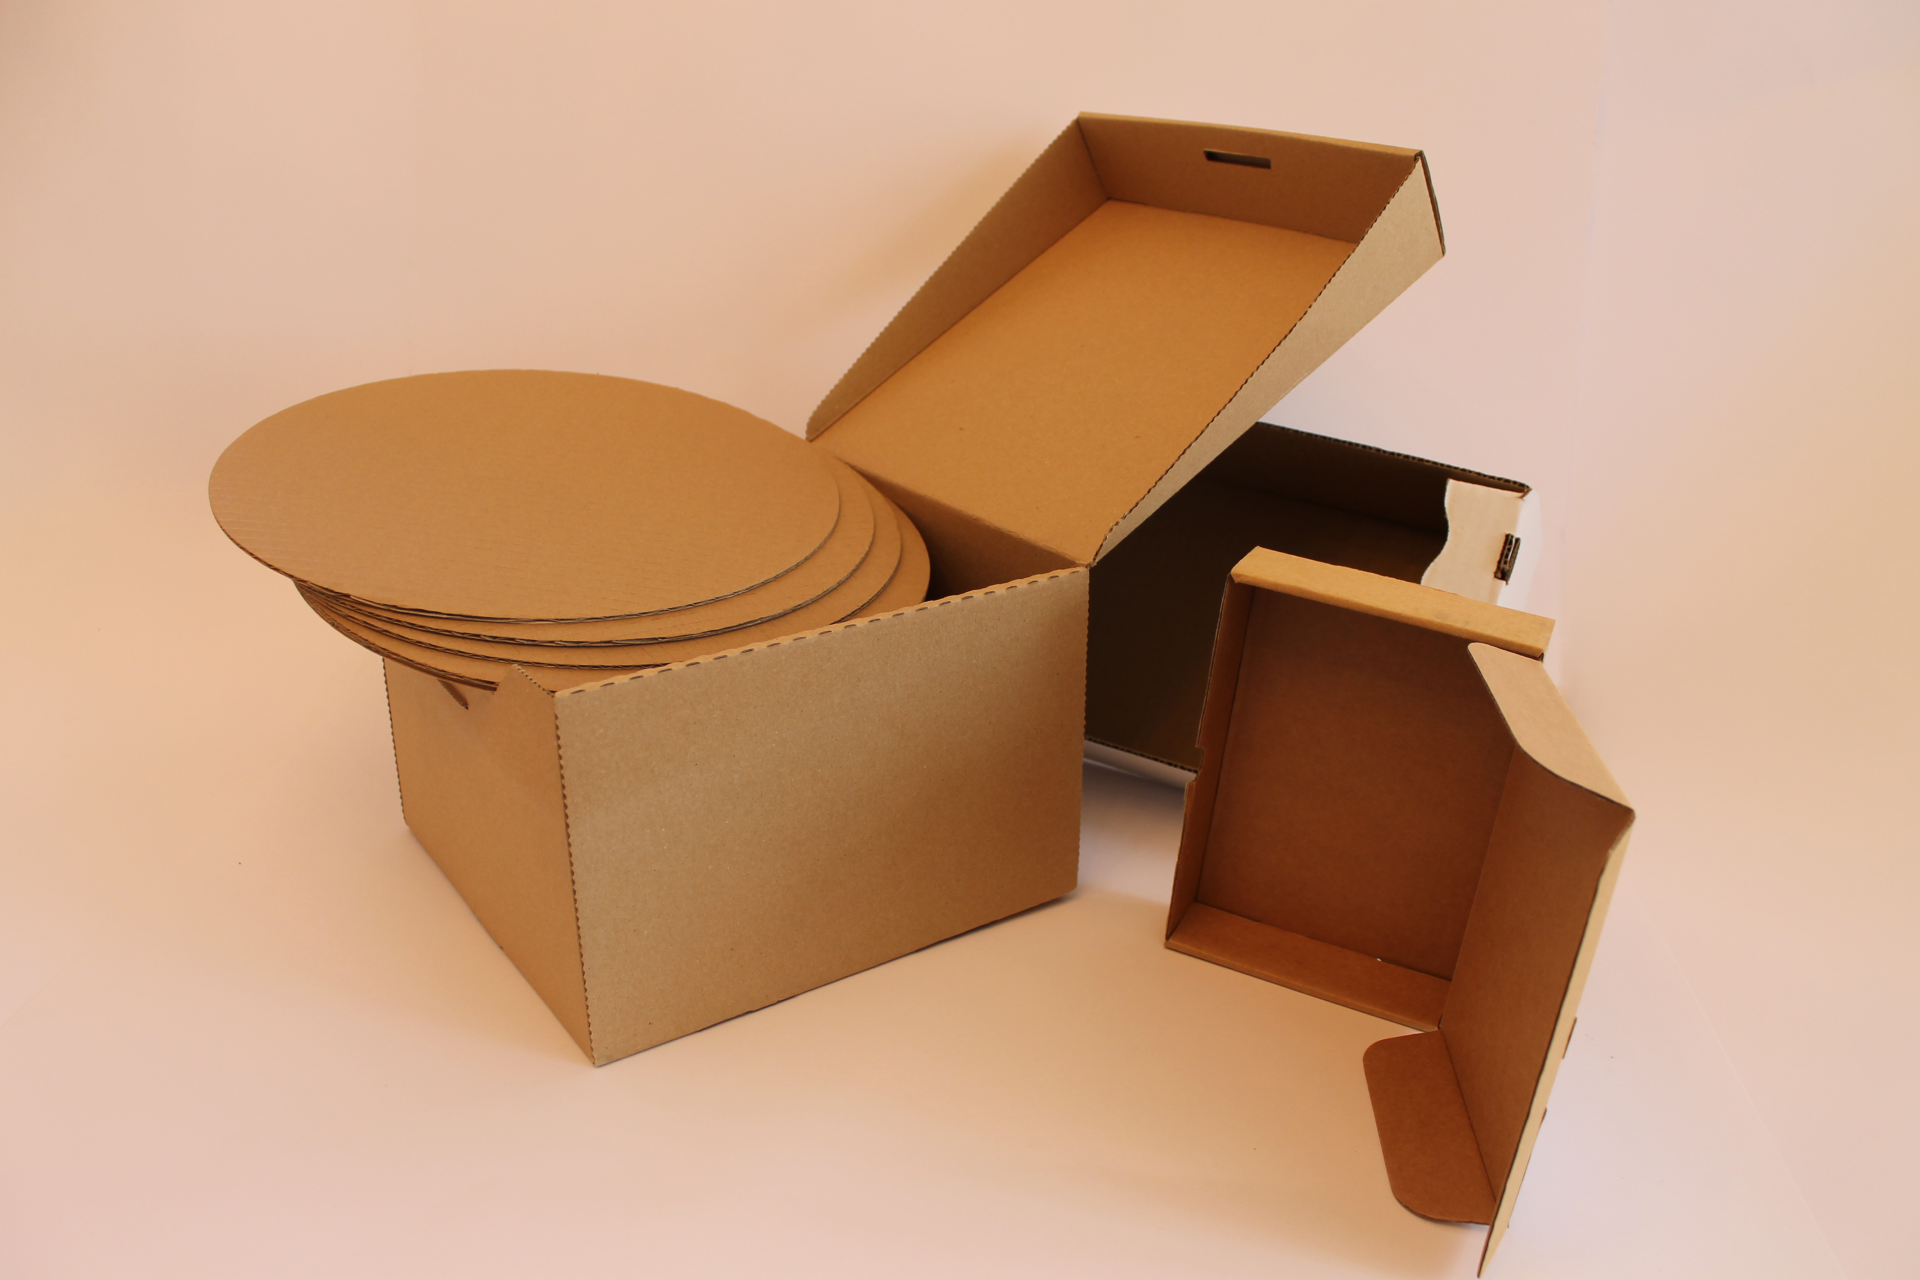 Custom Cardboard Boxes Are the Superman of the Packaging Industry | edwardsnowden